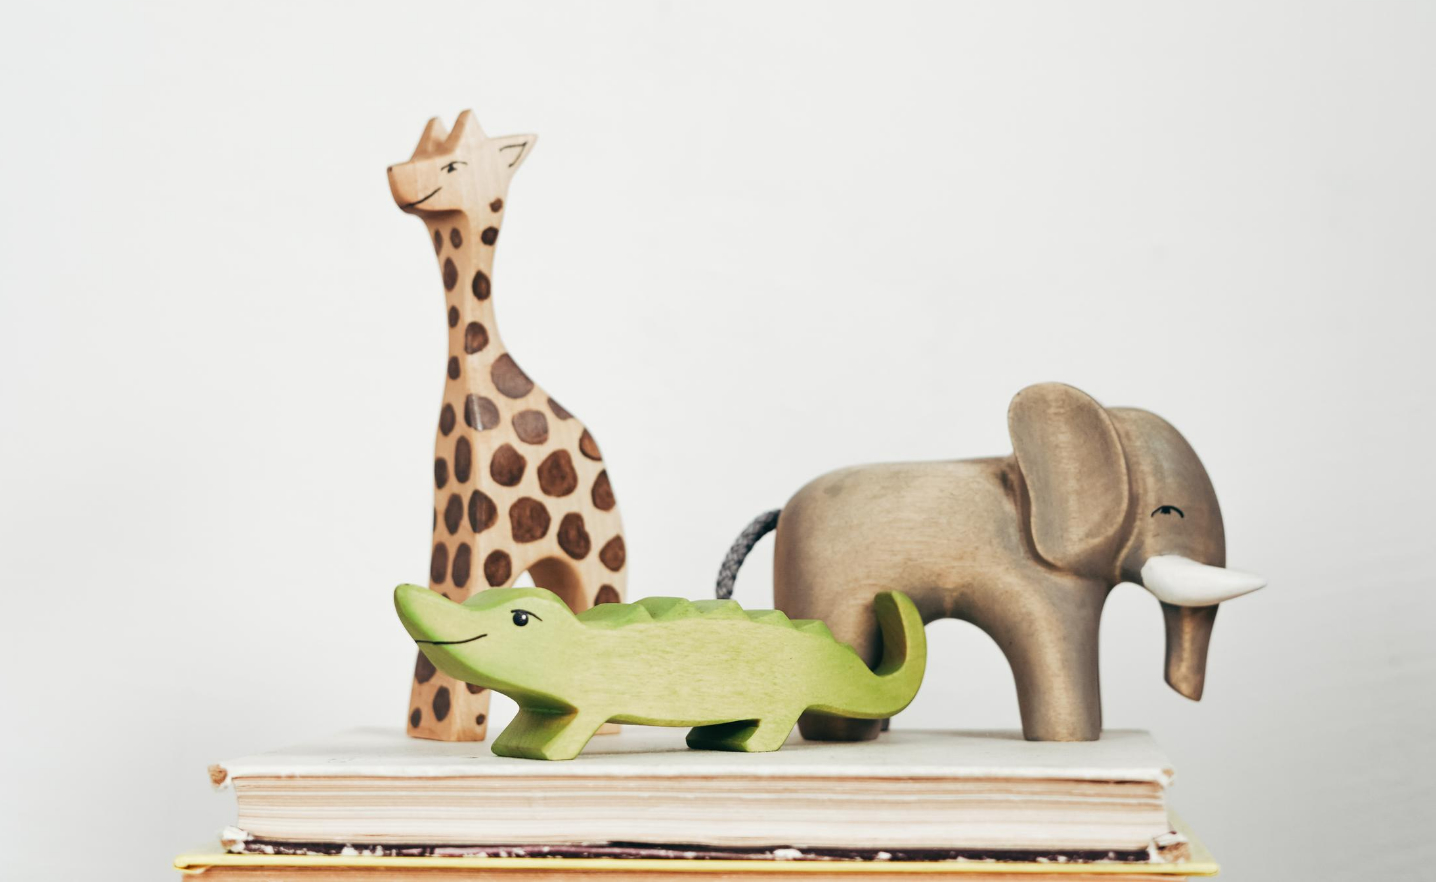 List of 8 Unique Places to Donate Gently Used Kids Toys | For Animals For Earth